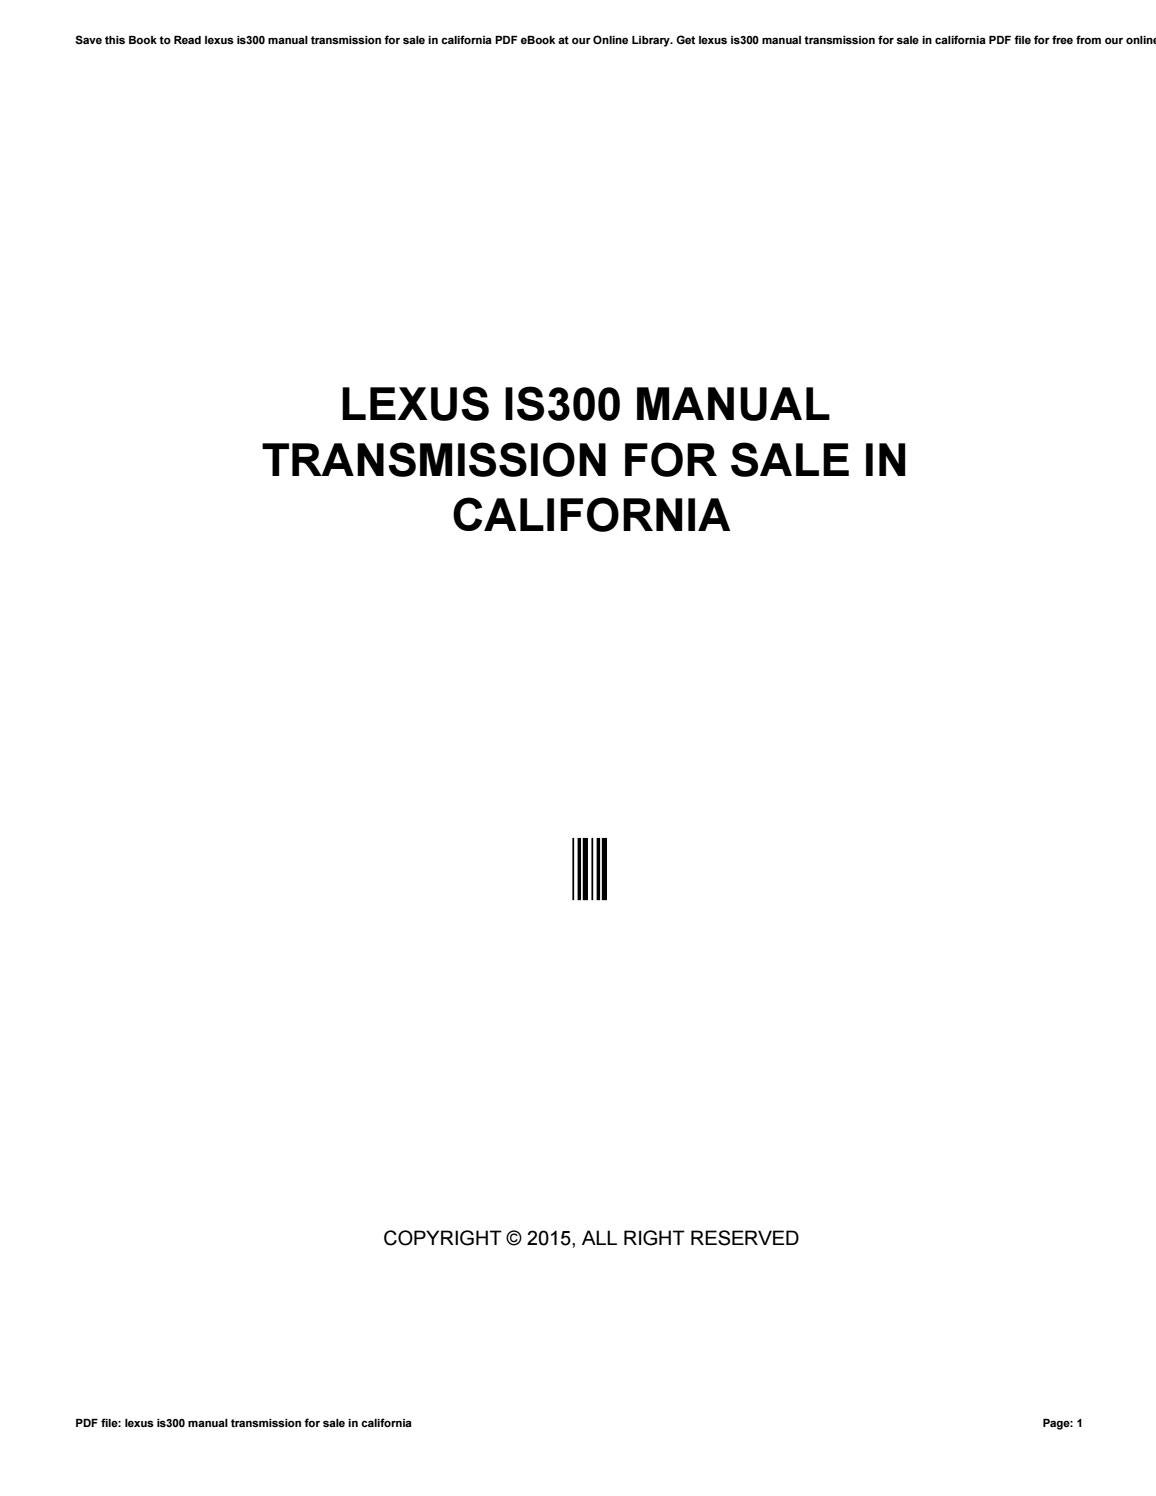 Lexus is300 manual transmission for sale in california by cutout04 - issuu